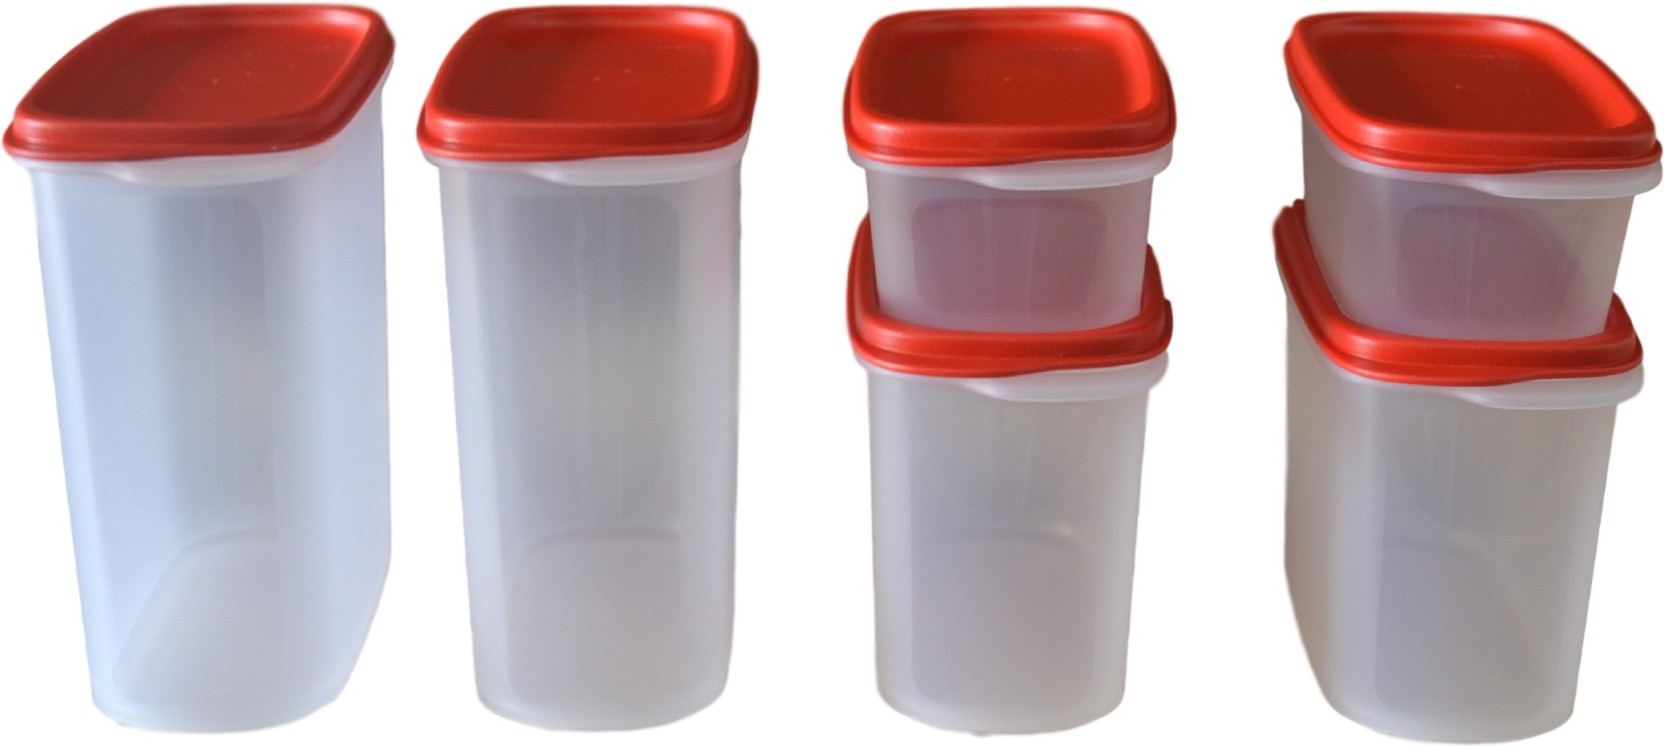 Tupperware Smart Saver Set Of 6 1700 Ml 1100 500 Plastic Classy Red Collection Add To Cart